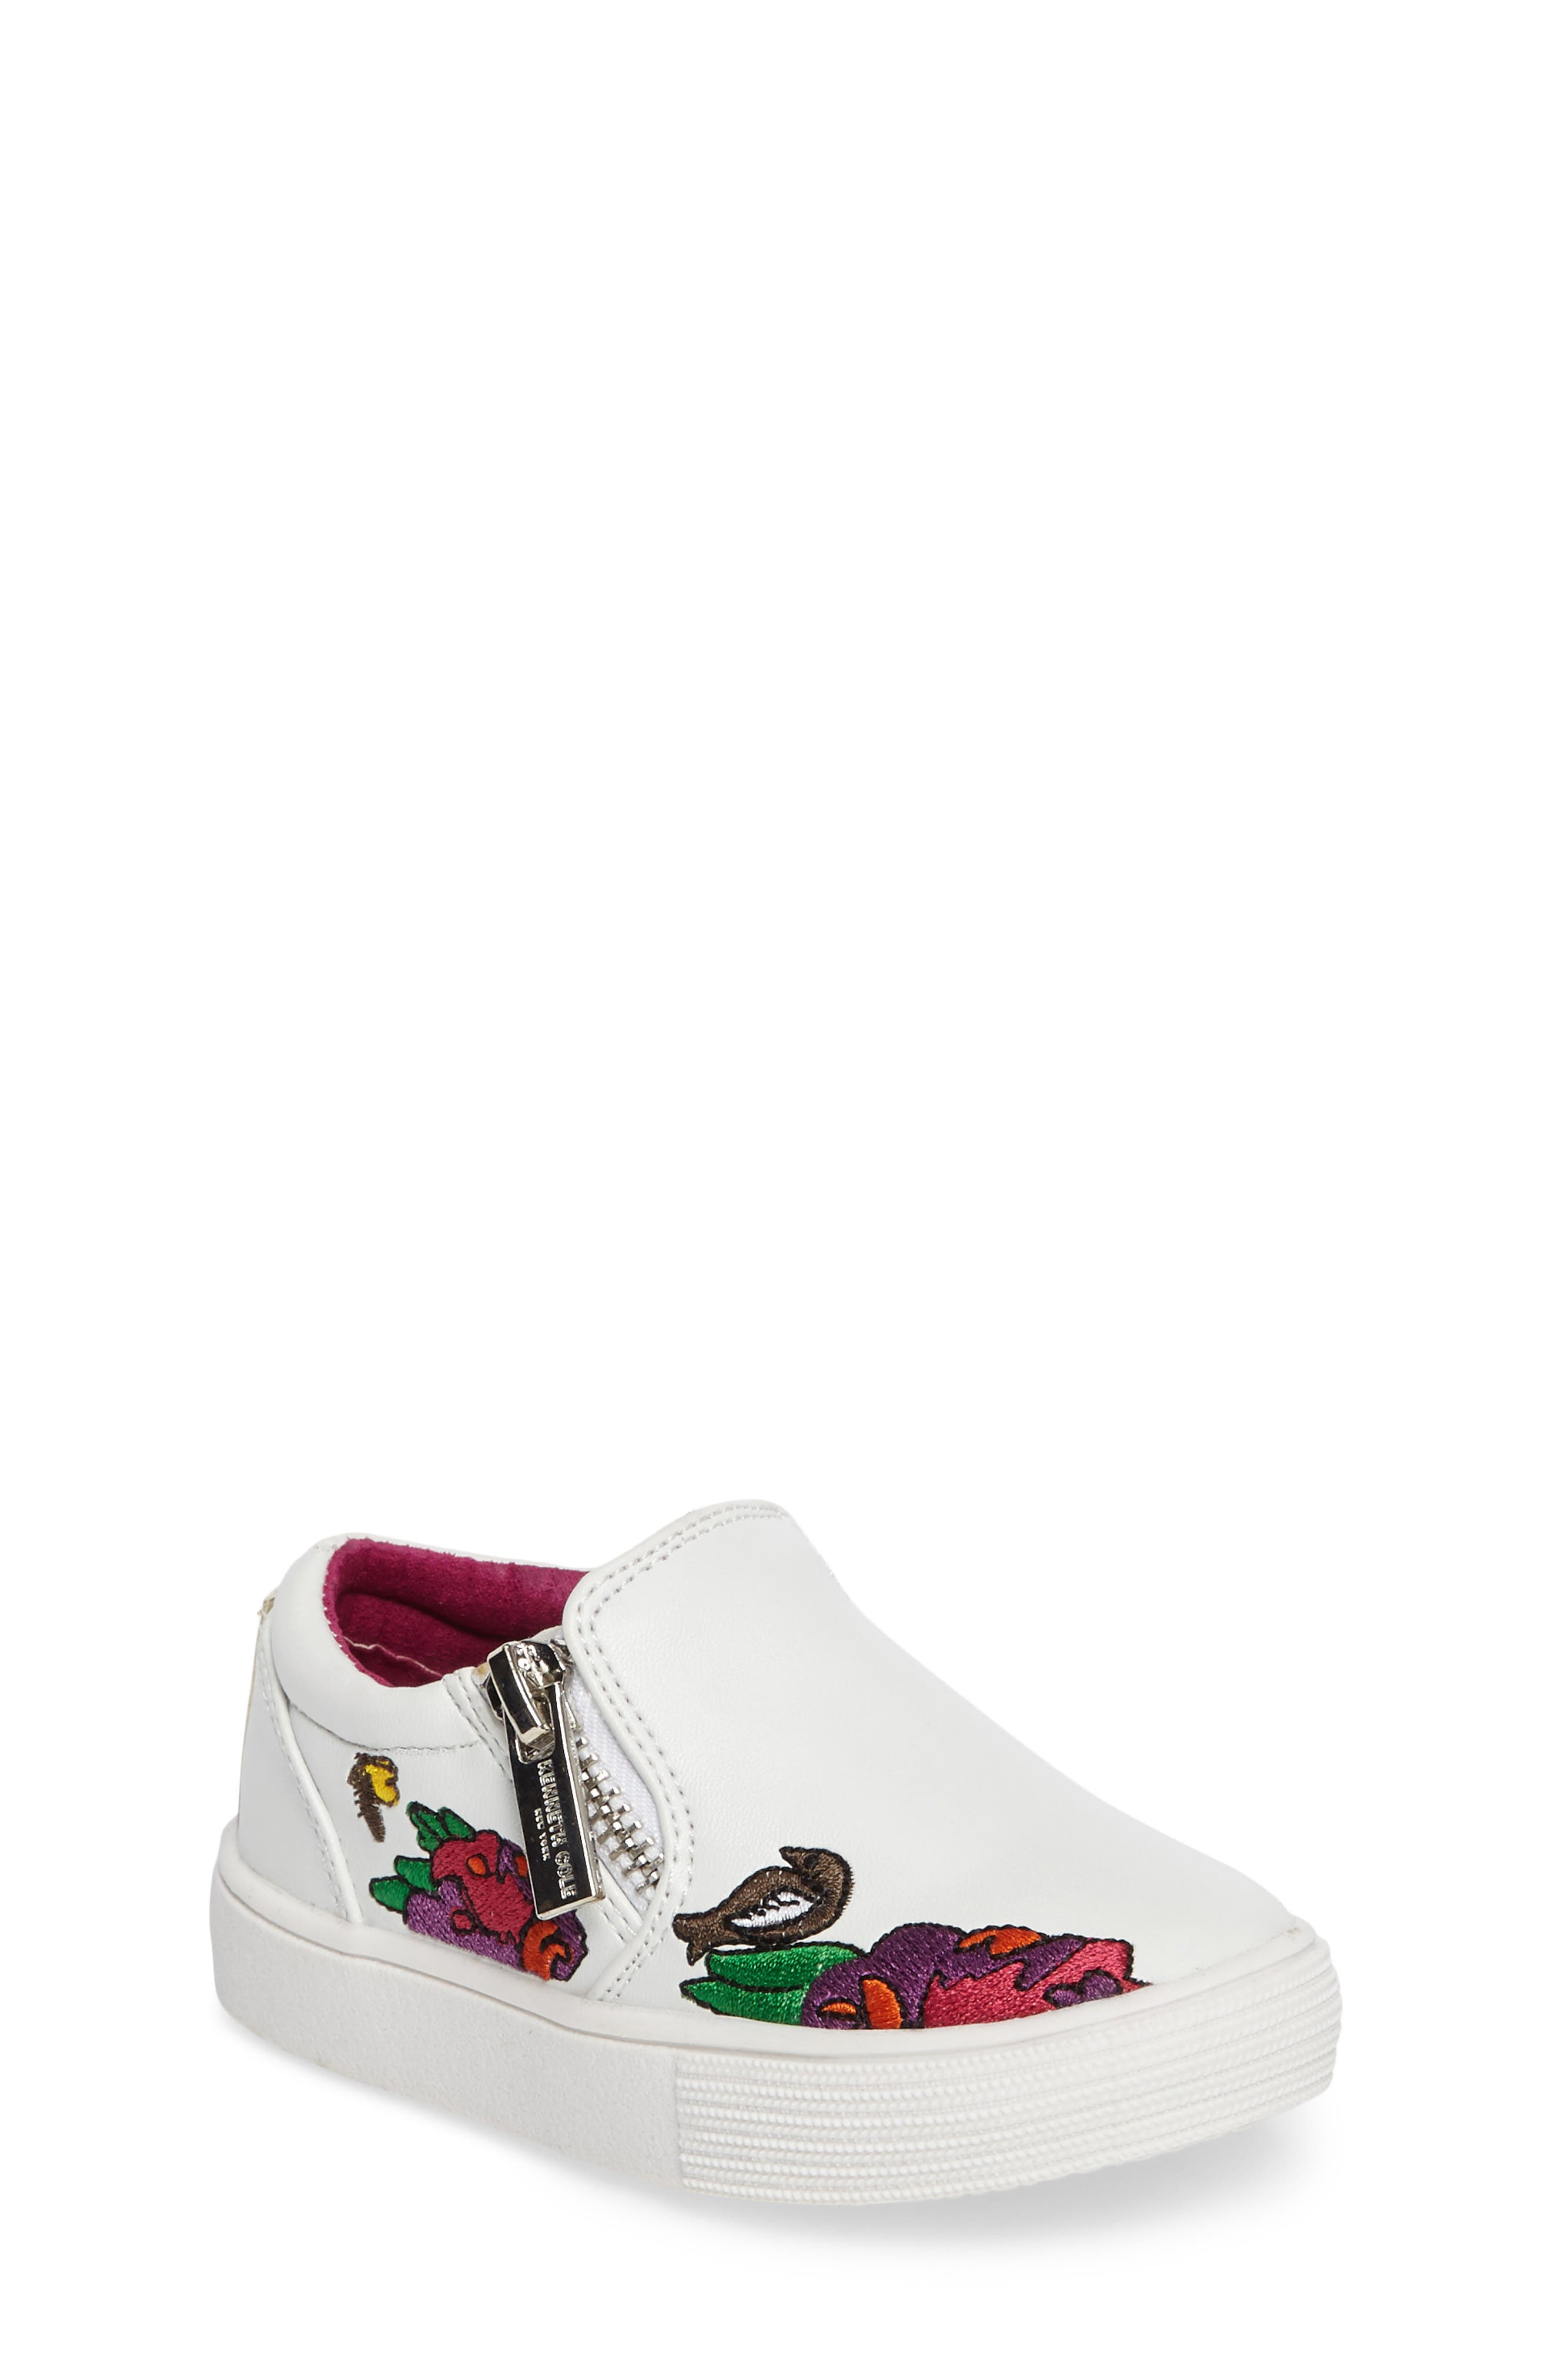 Main Image - Kenneth Cole New York Kam Dory Embroidered Zip Sneaker (Walker & Toddler)